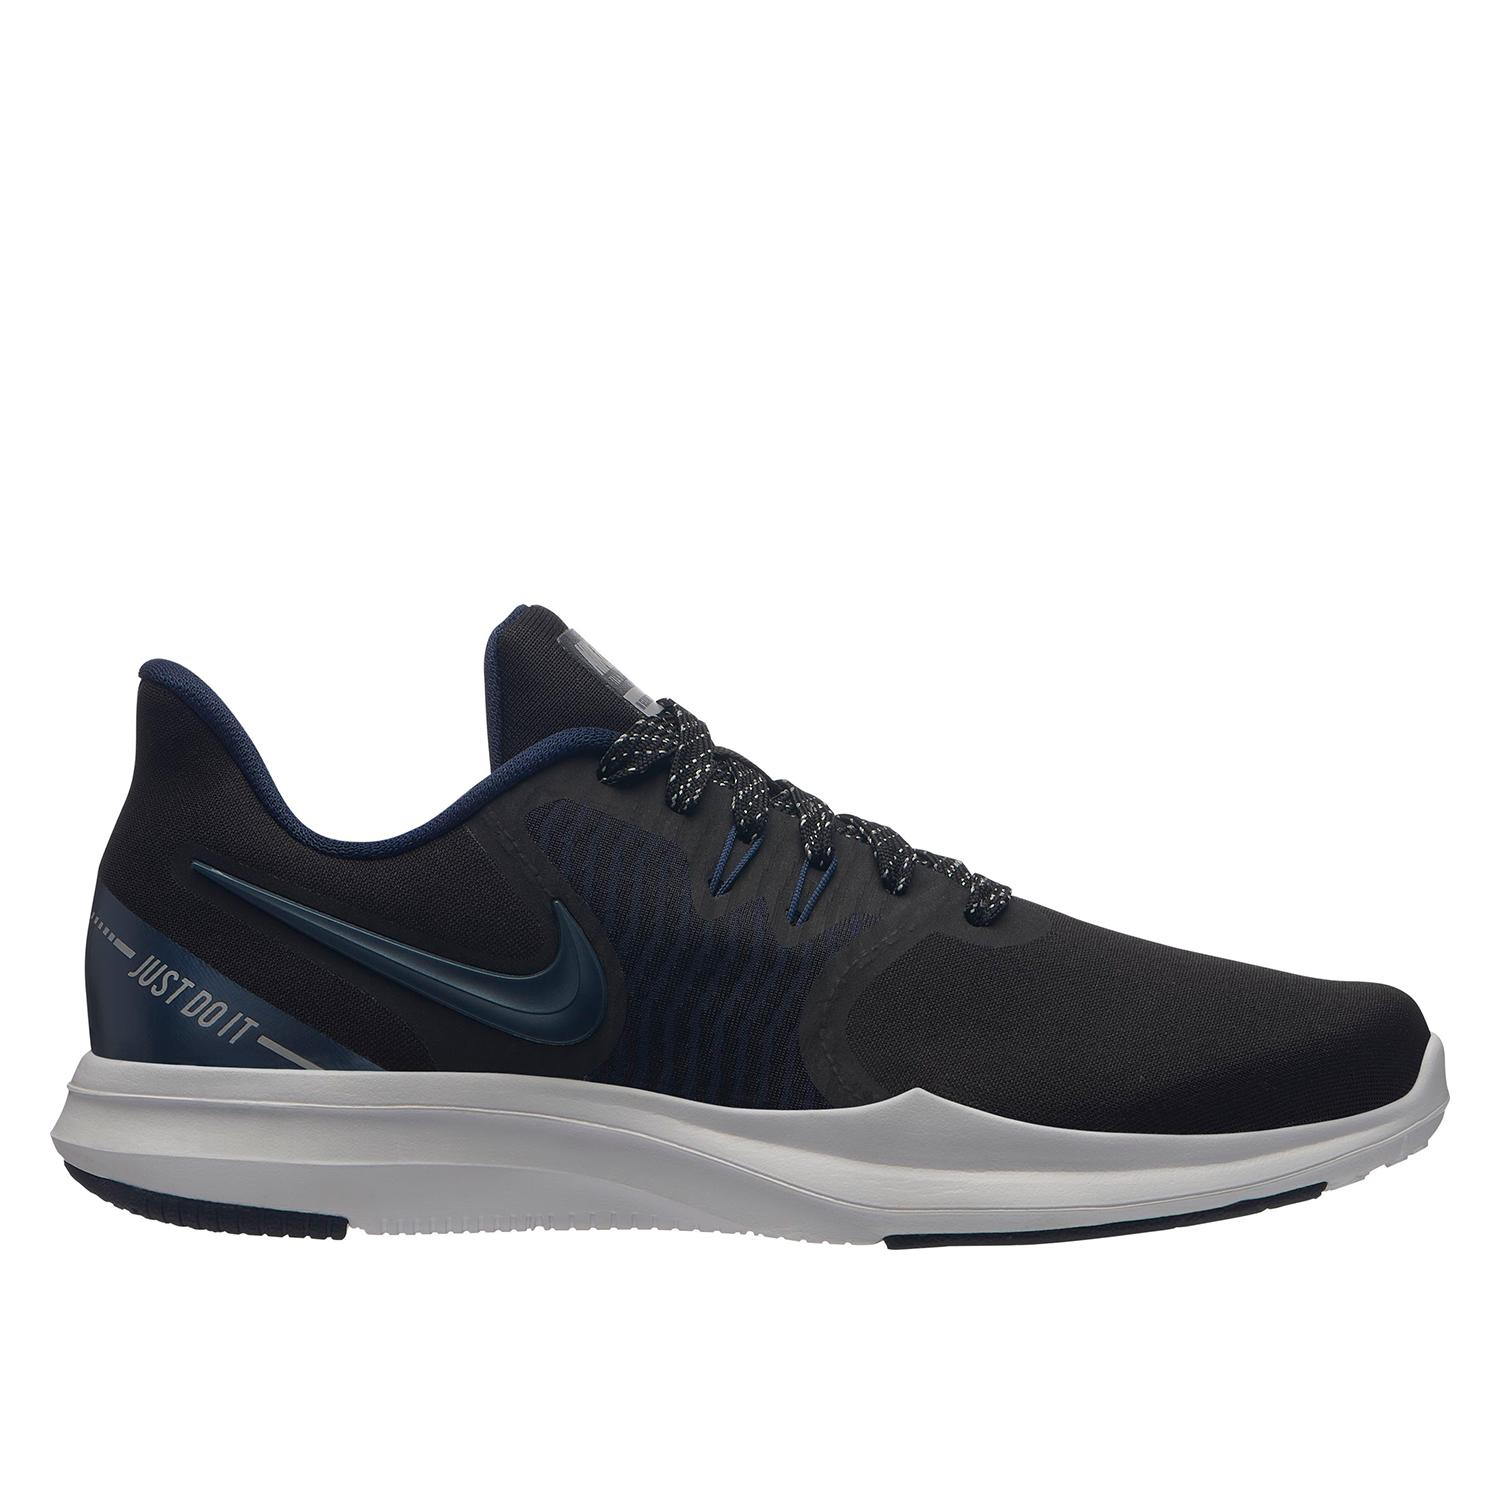 new style the sale of shoes super quality newest 5cba8 07398 free 0 intersport nike fit tr 5 - doragallego.com